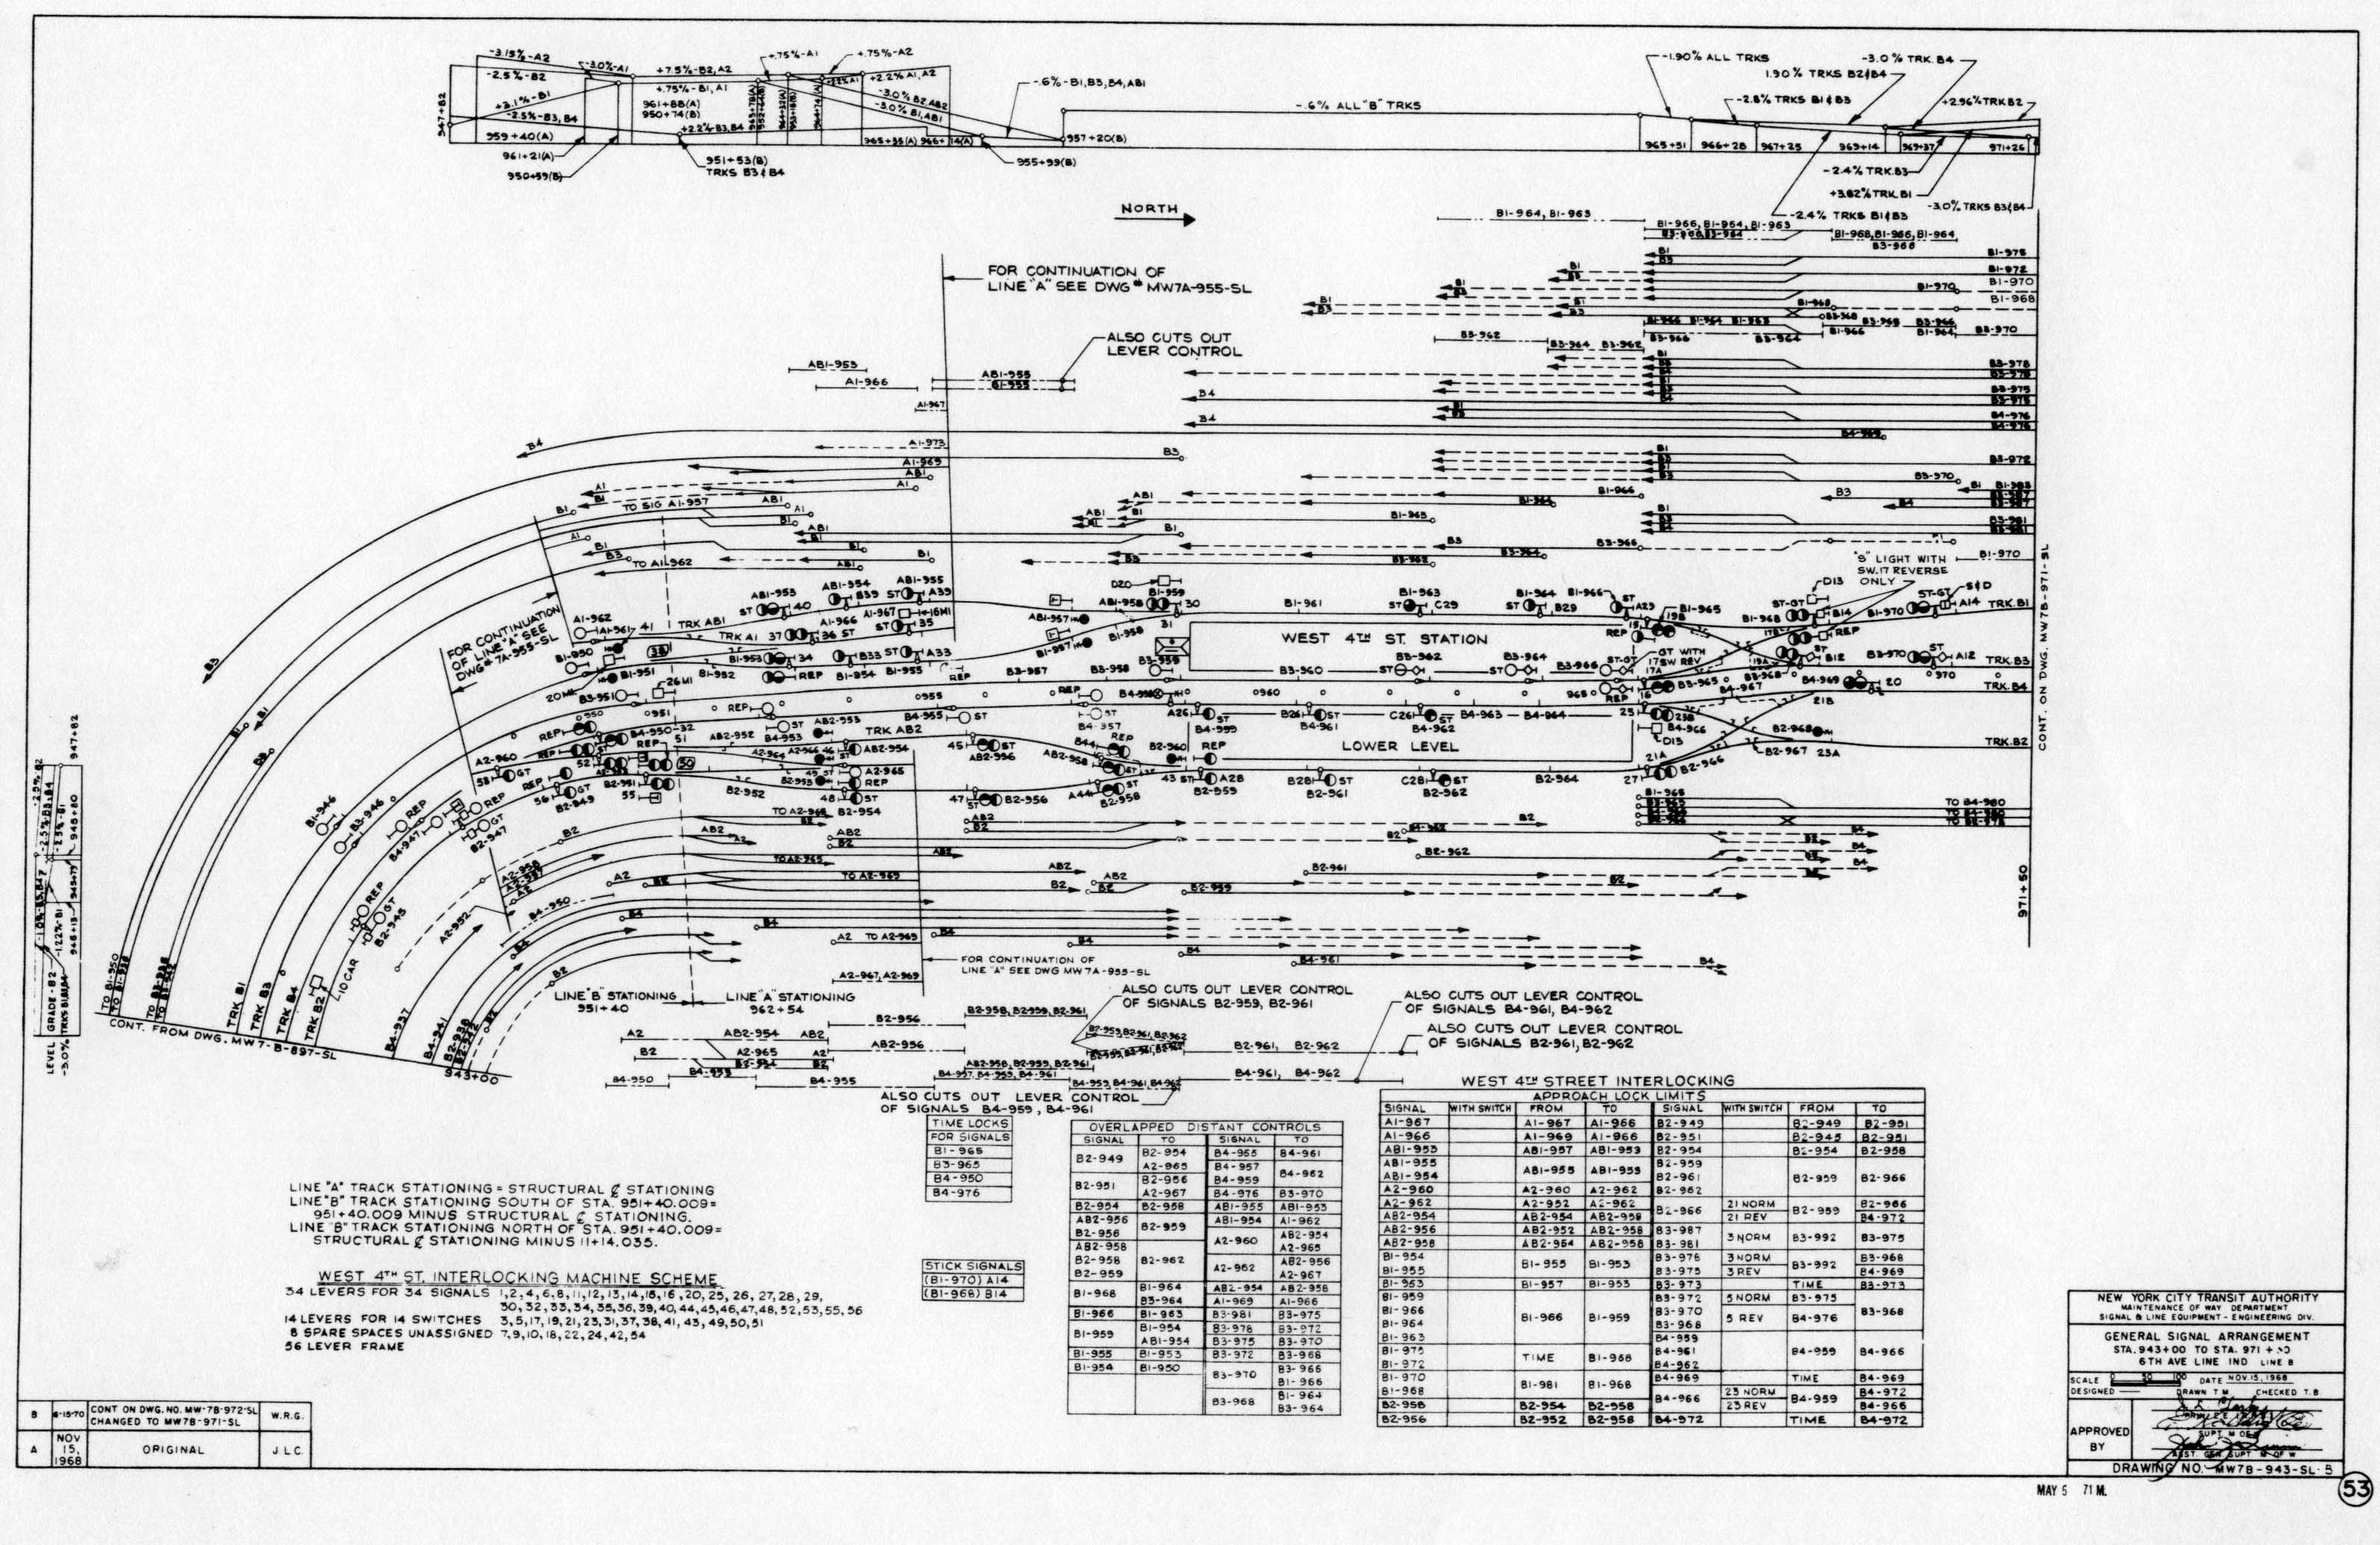 Ho Model Railroad Track Plans